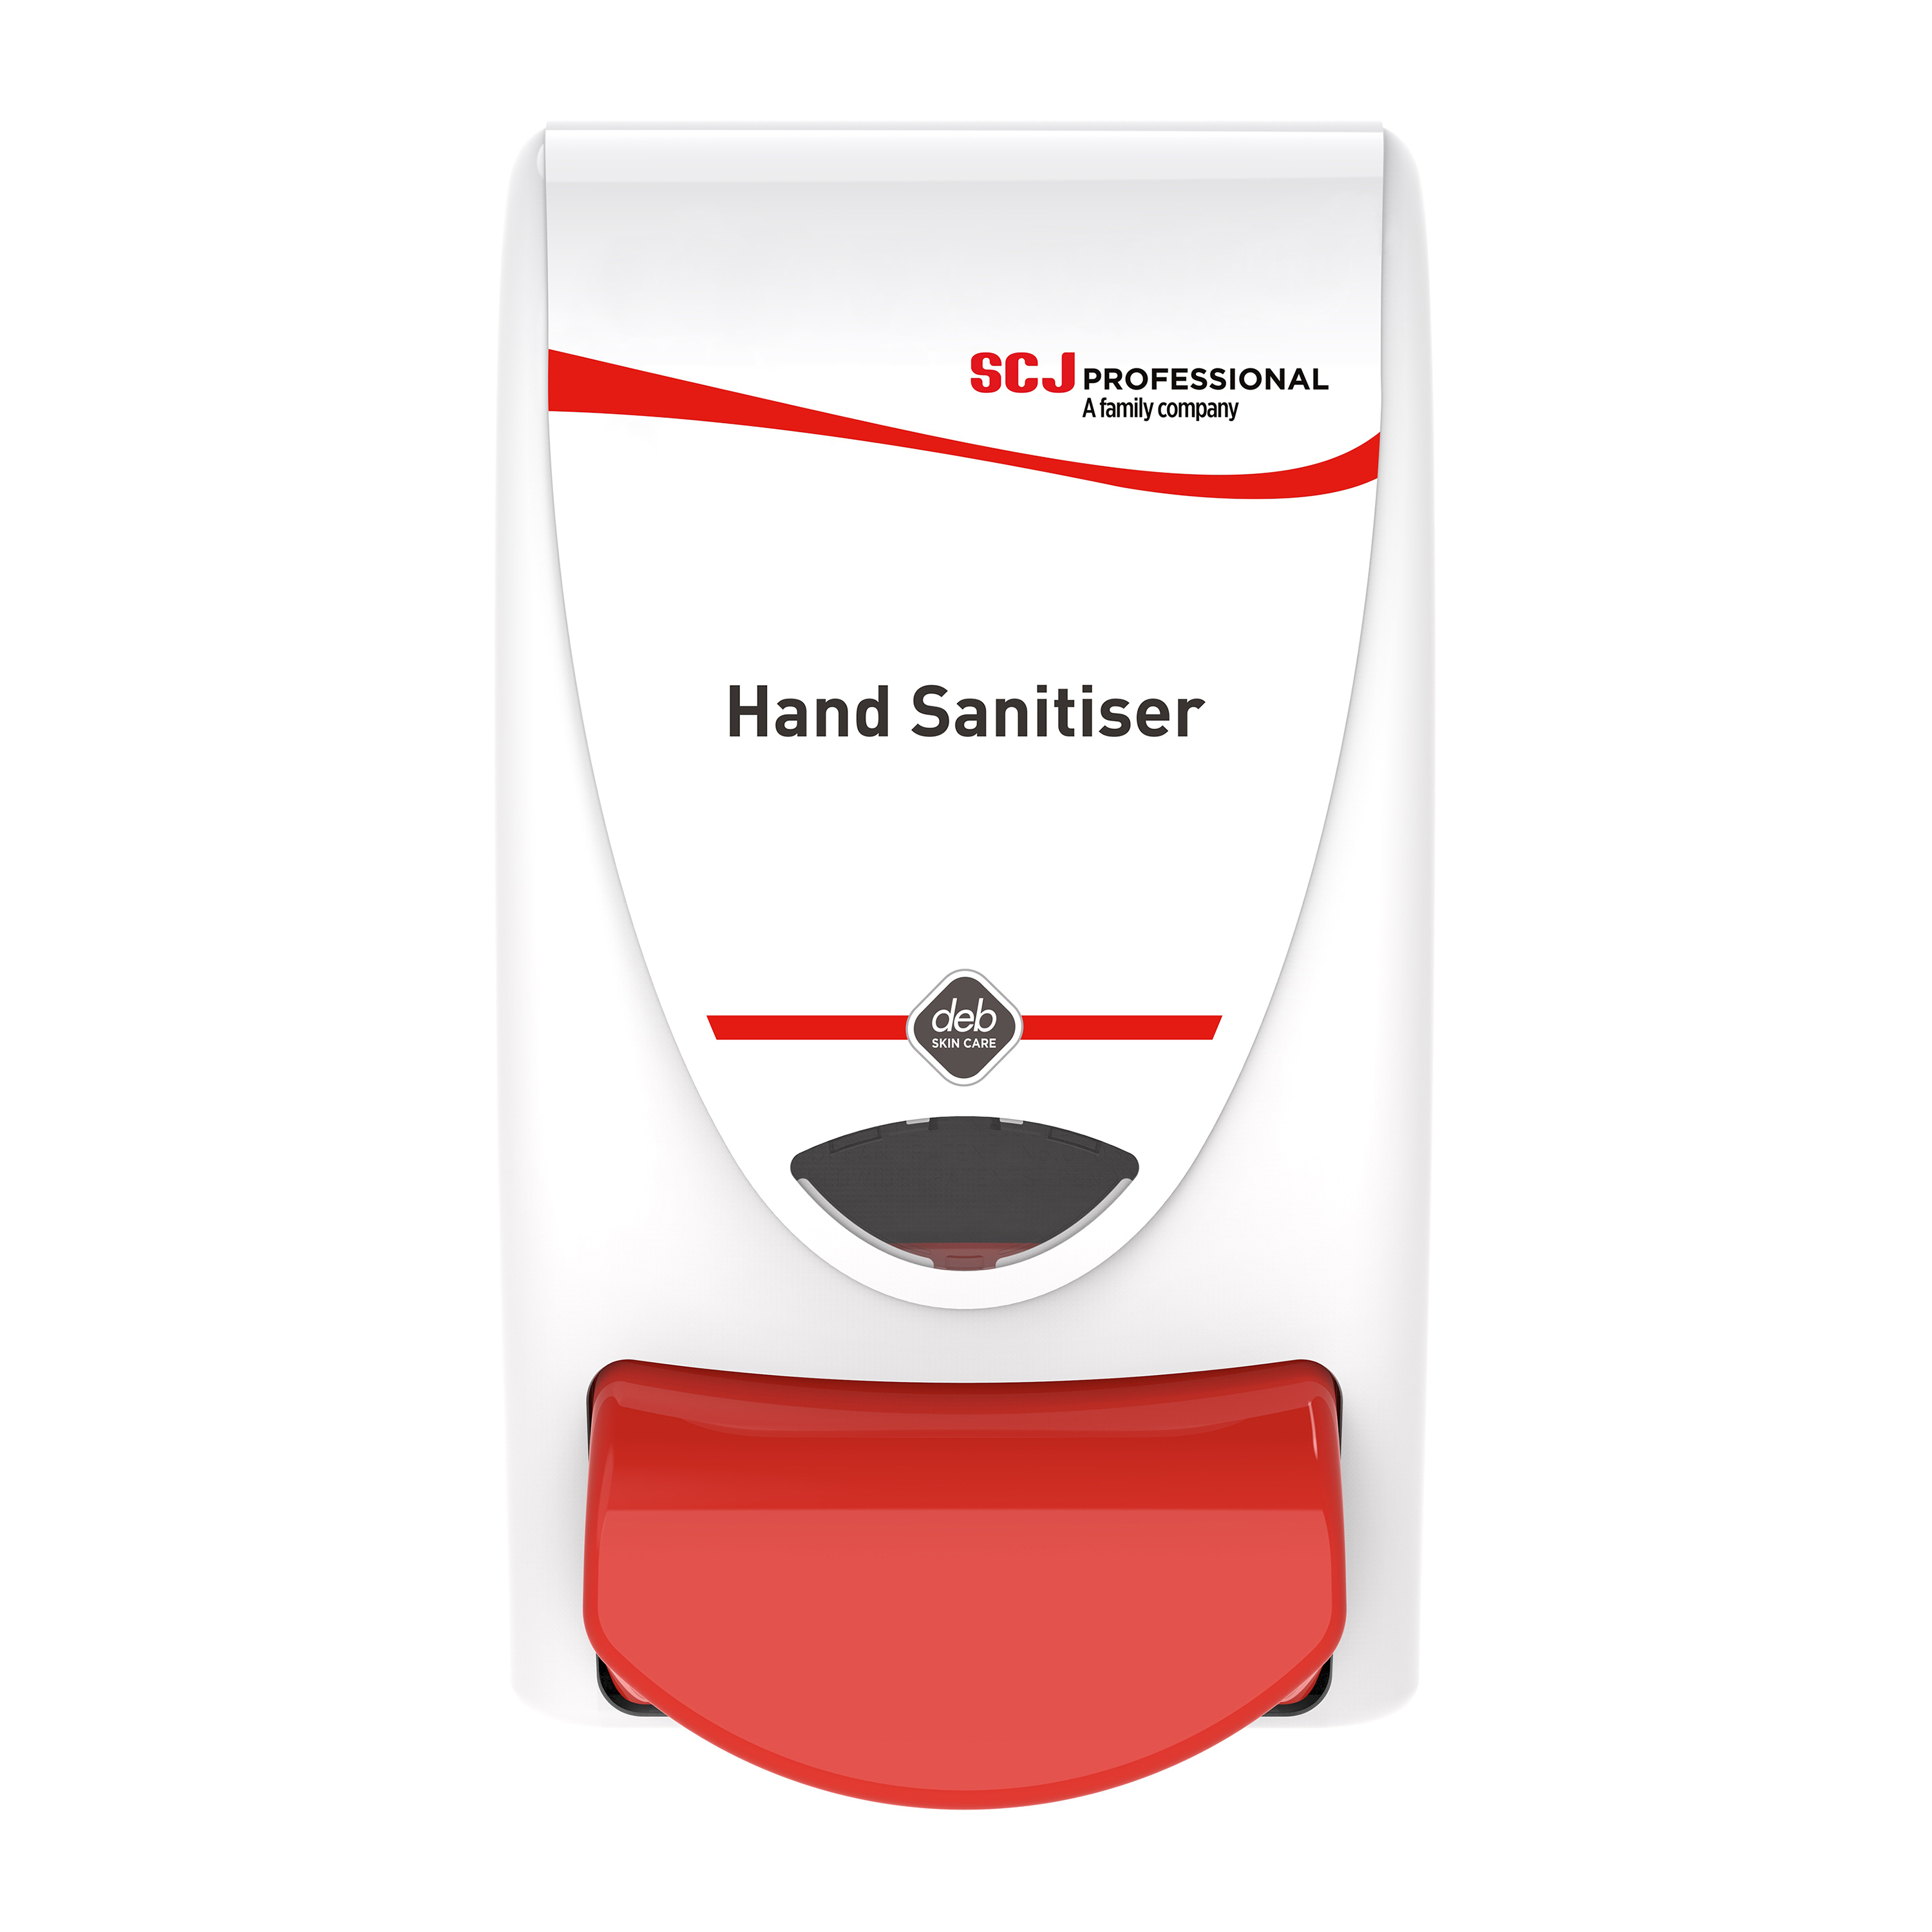 Hand Soaps / Sanitisers & Dispensers DEB Instant Foam Hand Sanitiser Dispenser 1L Ref C00351